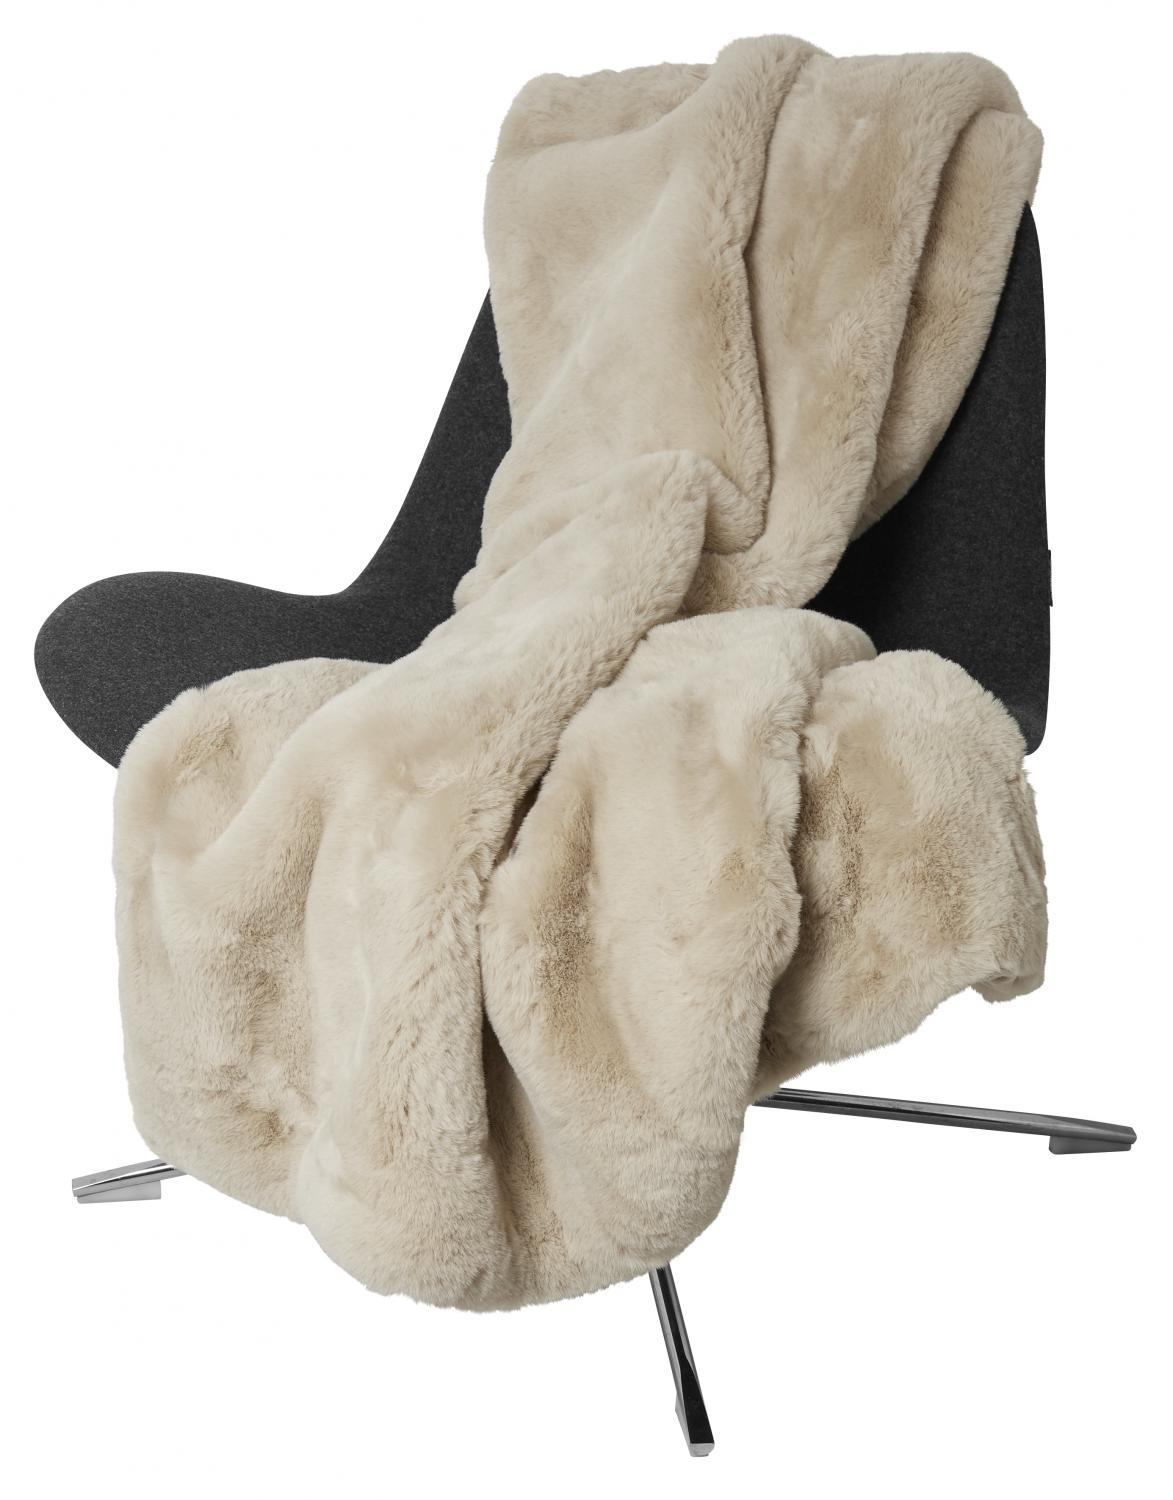 Fluffy Blanket - Beige